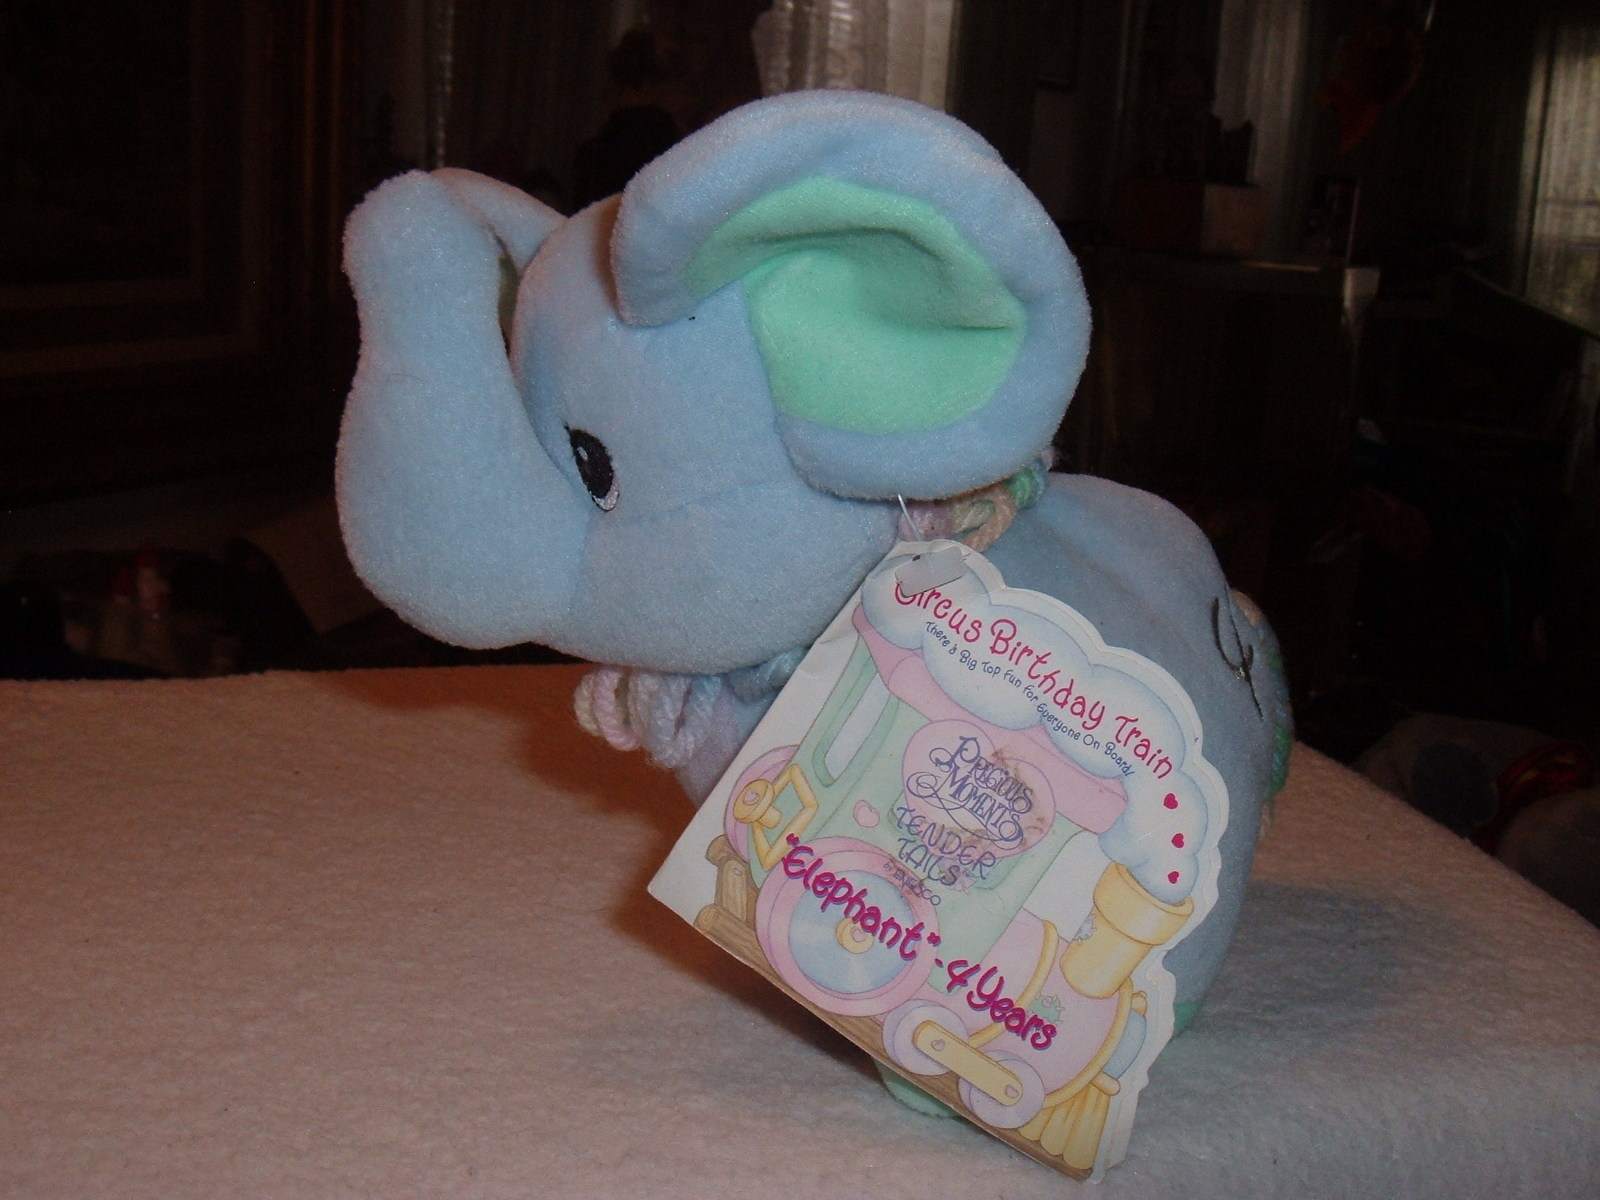 Precious Moments Tender Tails Age 4 Elephant Plush Stuffed Toy Doll Animal w/Tag image 2